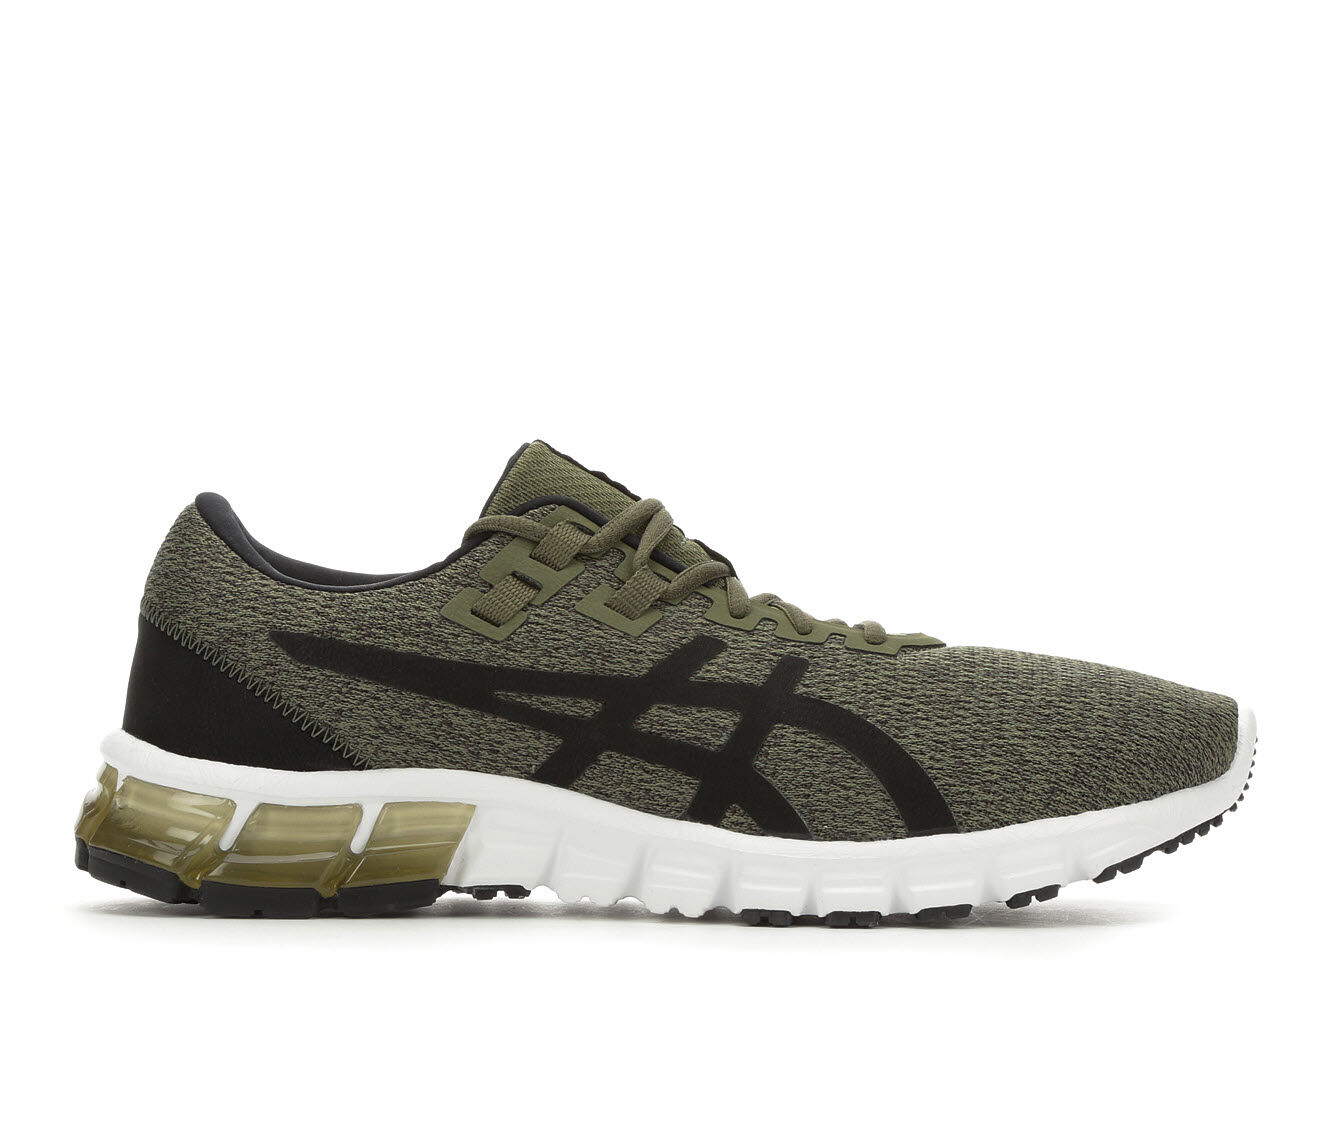 Exceptional quality Men's ASICS Gel Quantum 90 Running Shoes Olv/Blk/Wht